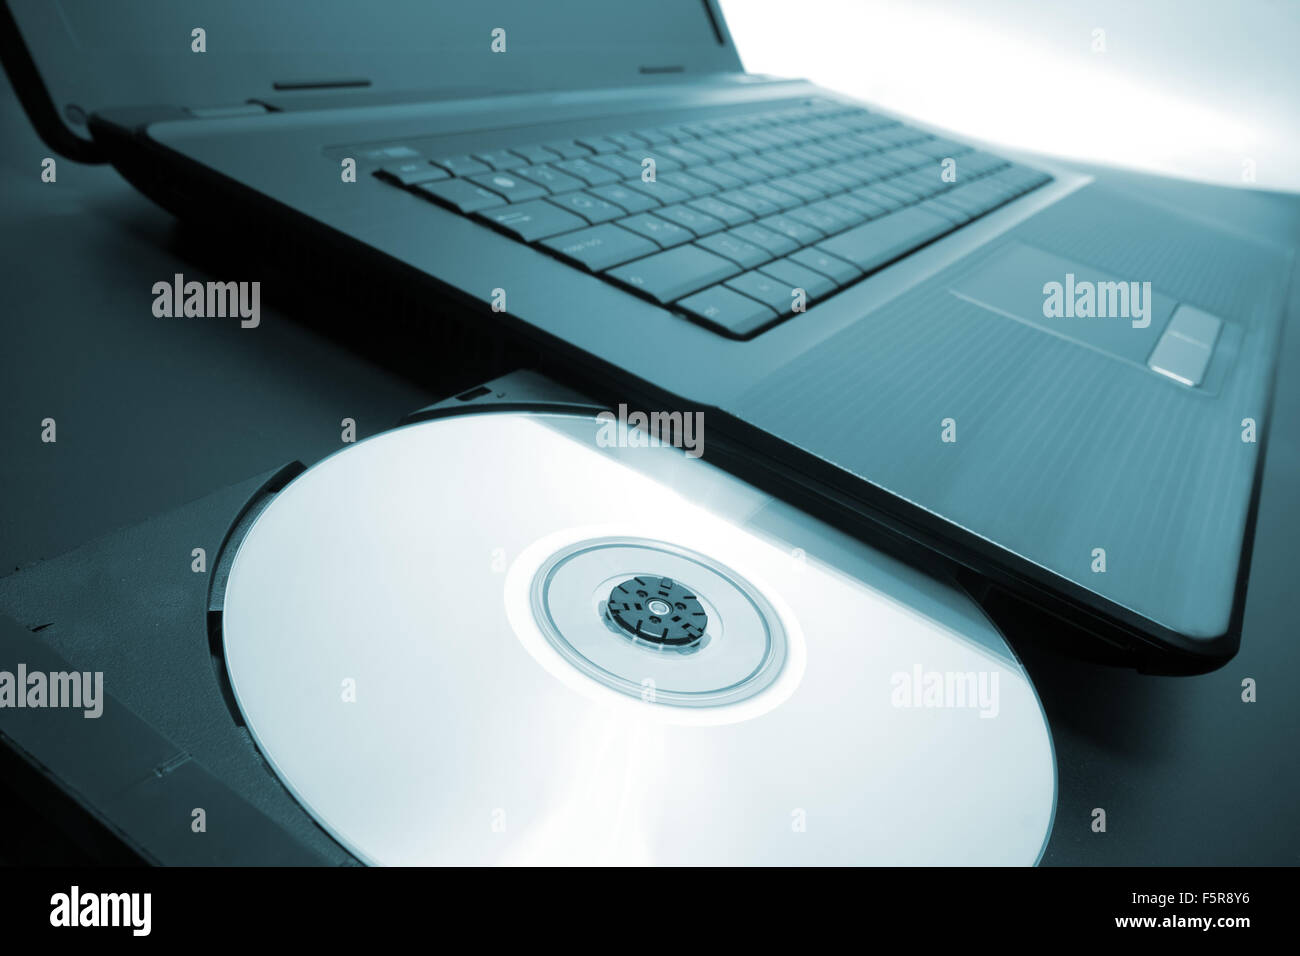 laptop with open cd dvd drive stock photo 89637050 alamy